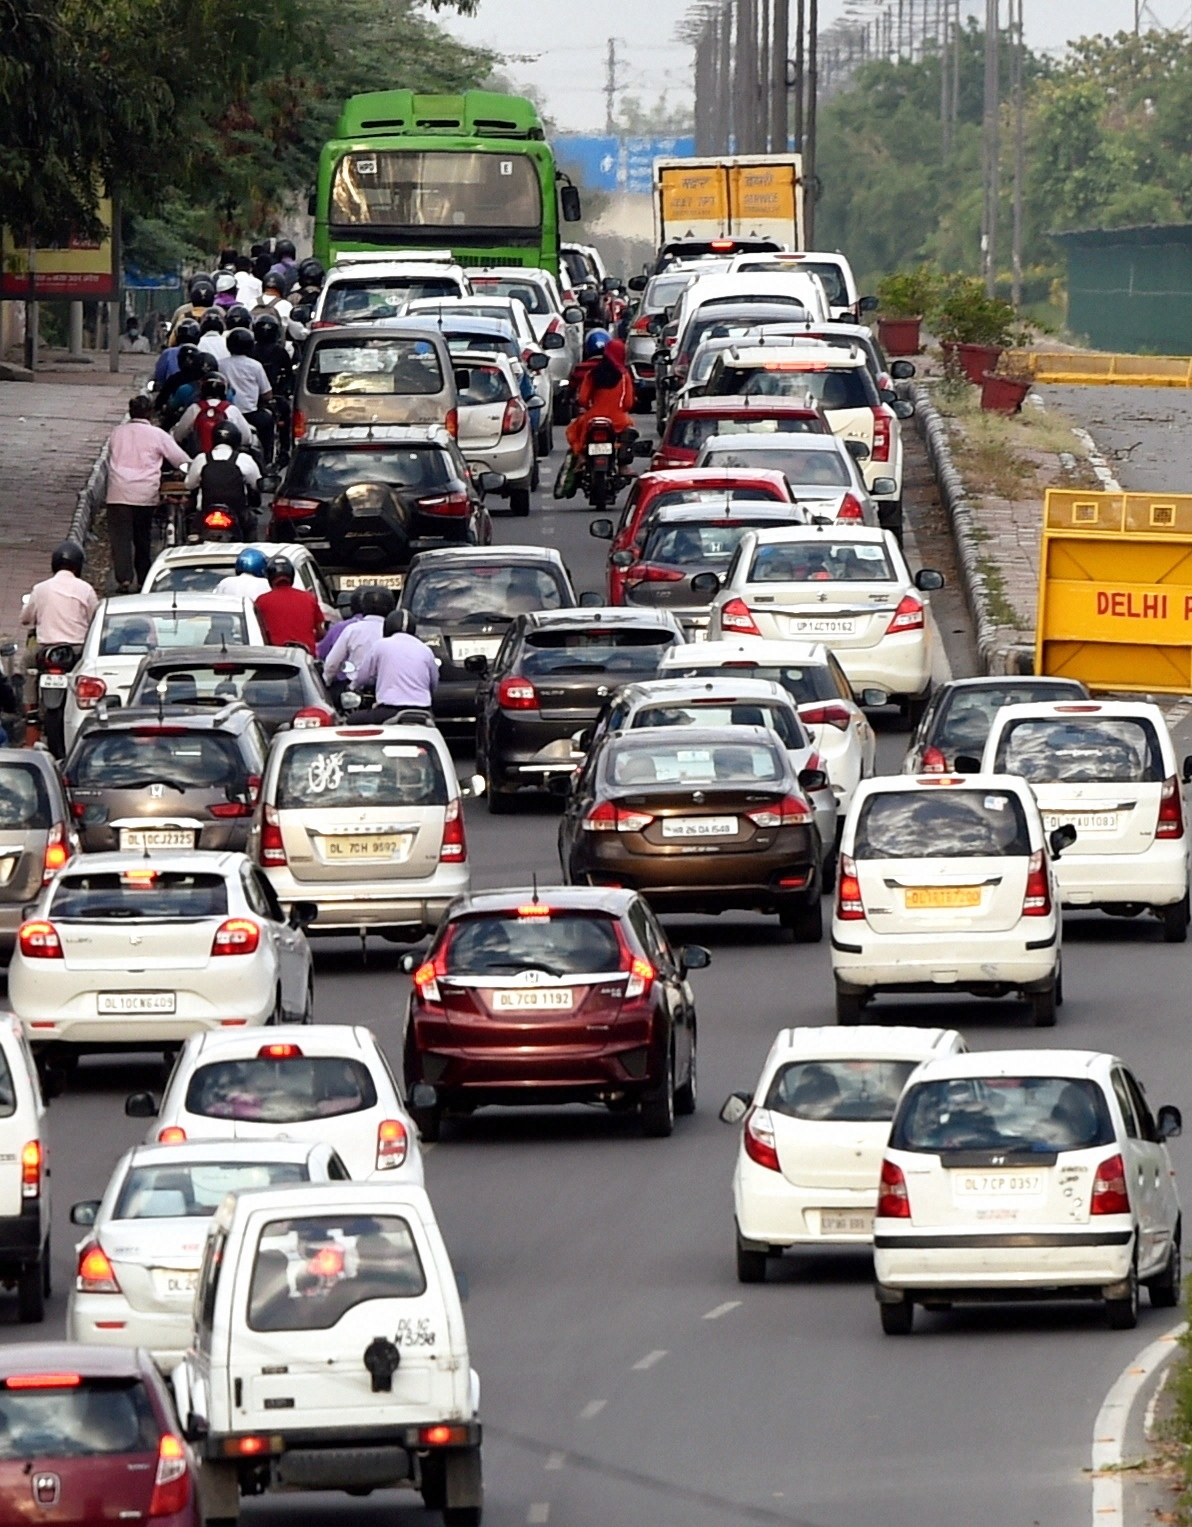 Vehicles queue up to cross a police barricade in New Delhi after the government eased the lockdown on Monday.